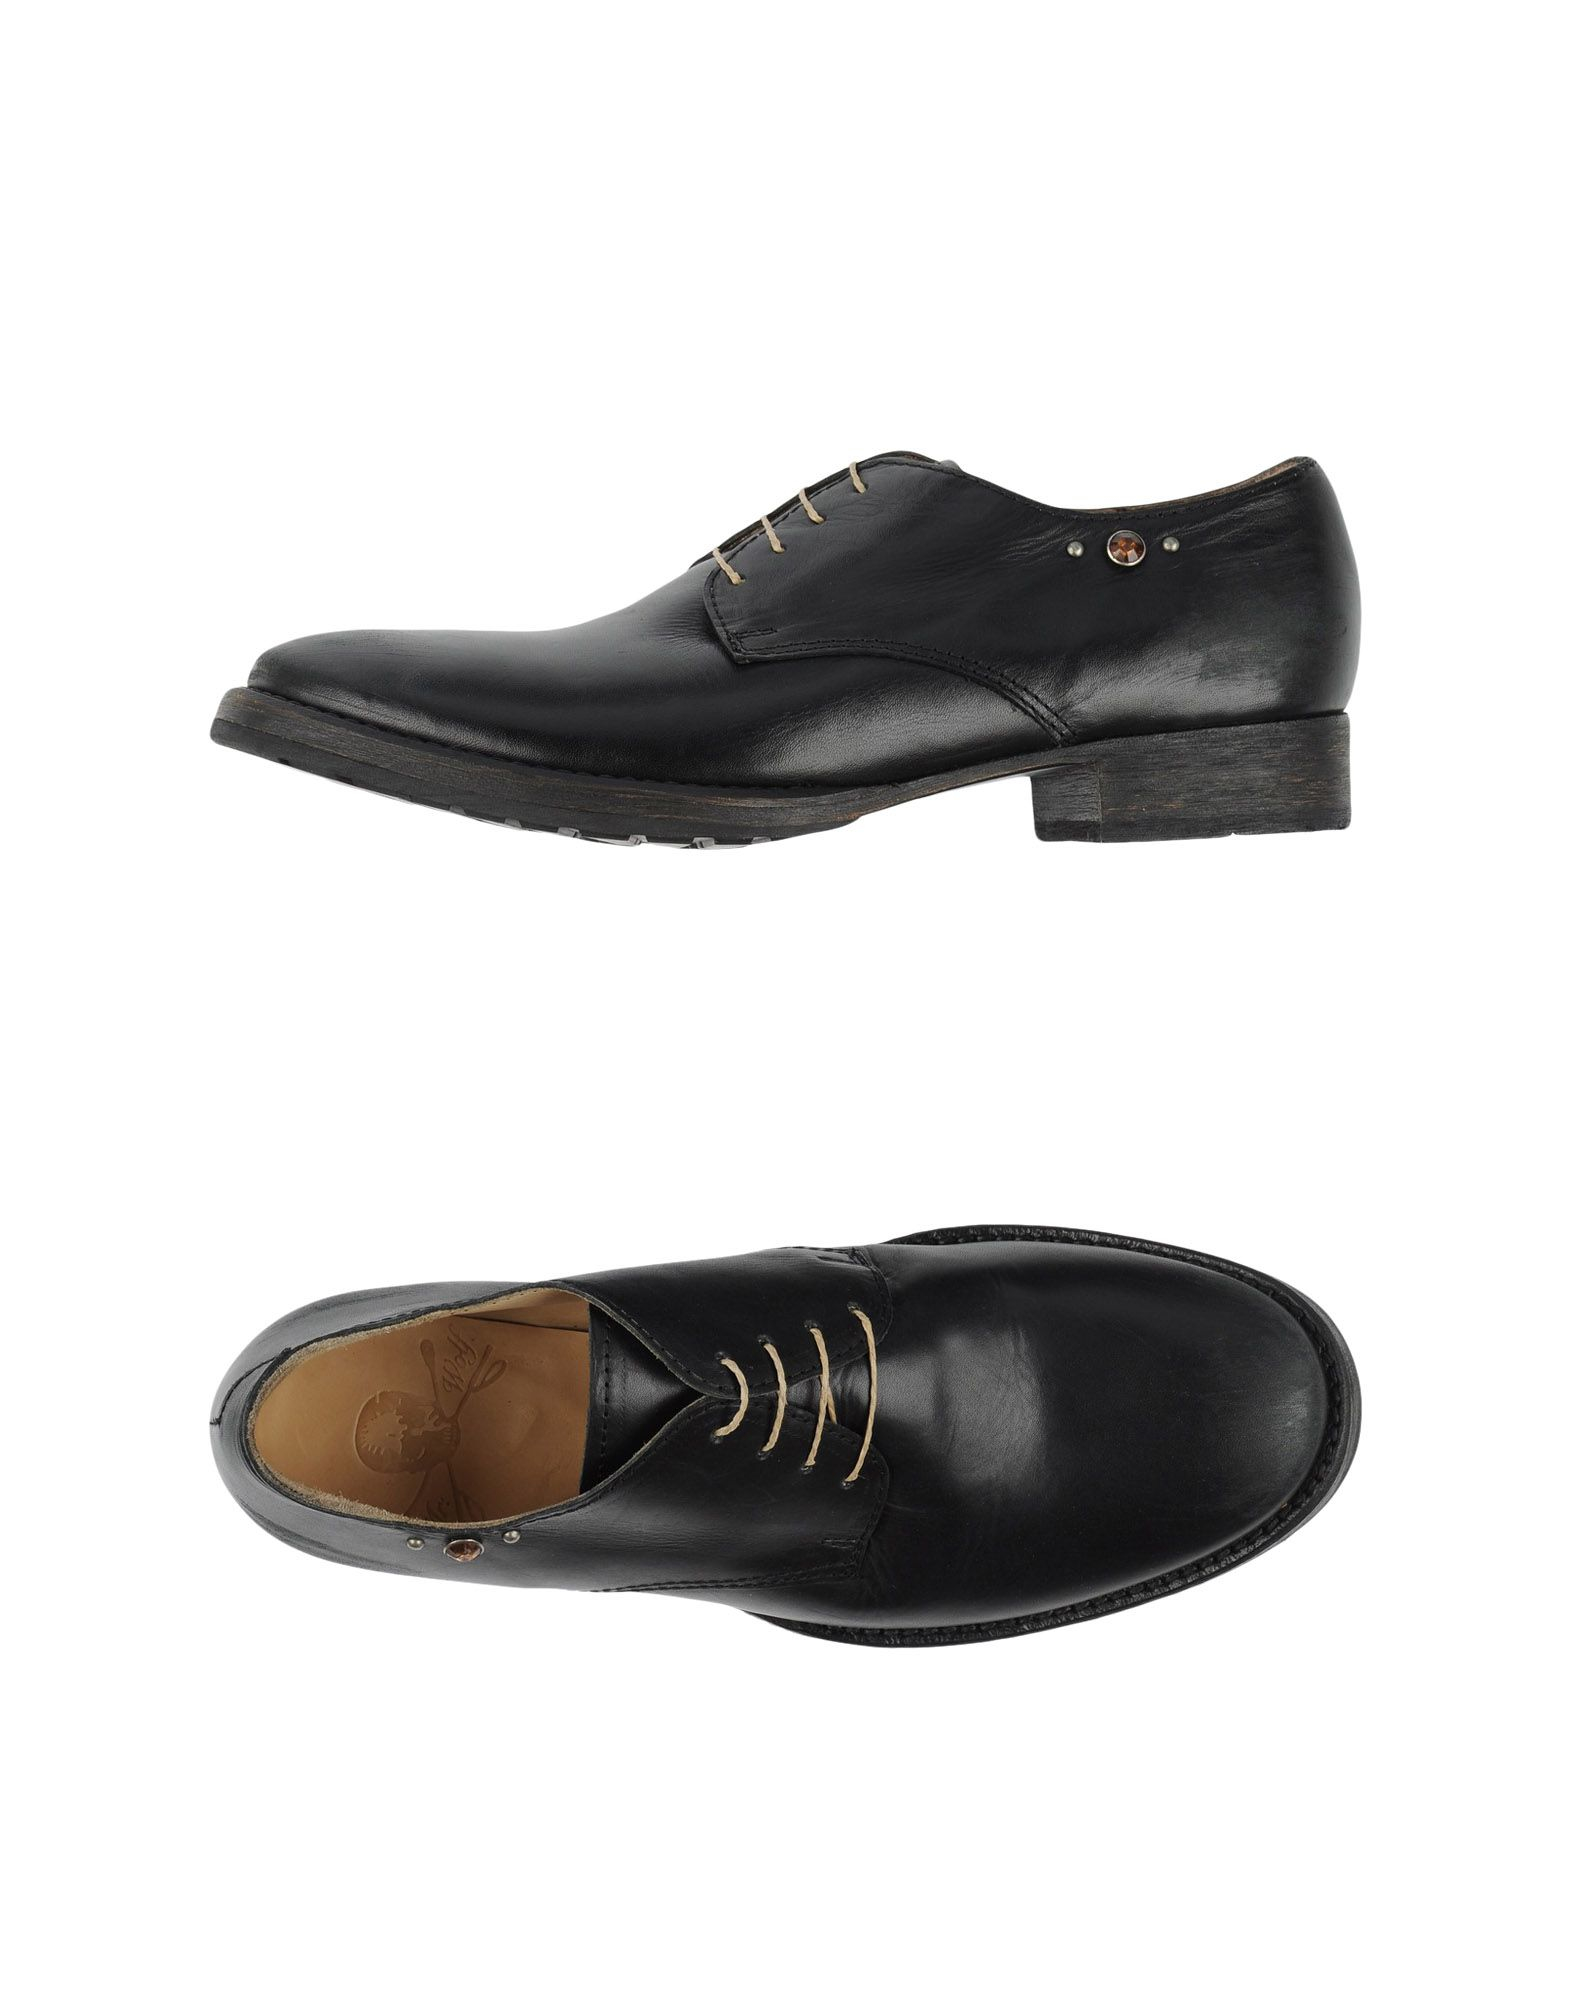 Mr. M. Wolf Lace-up Shoe Loup Chaussures À Lacets rLAAMcIQ